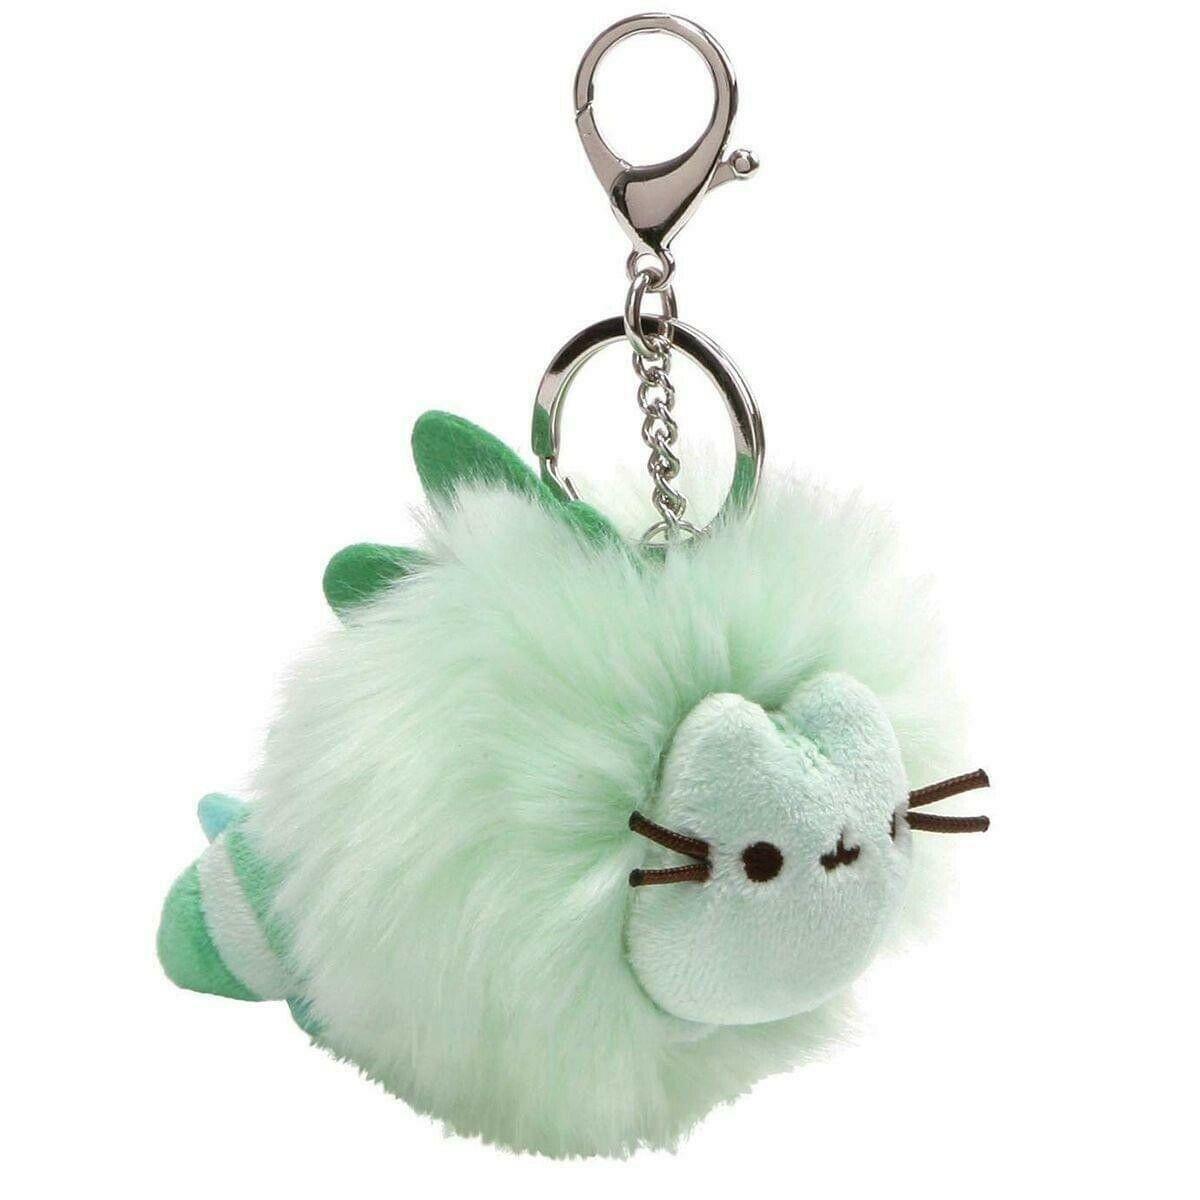 Primary image for Gund Pusheen Pastel Poof Pom Pom Keychain - Green #4060000